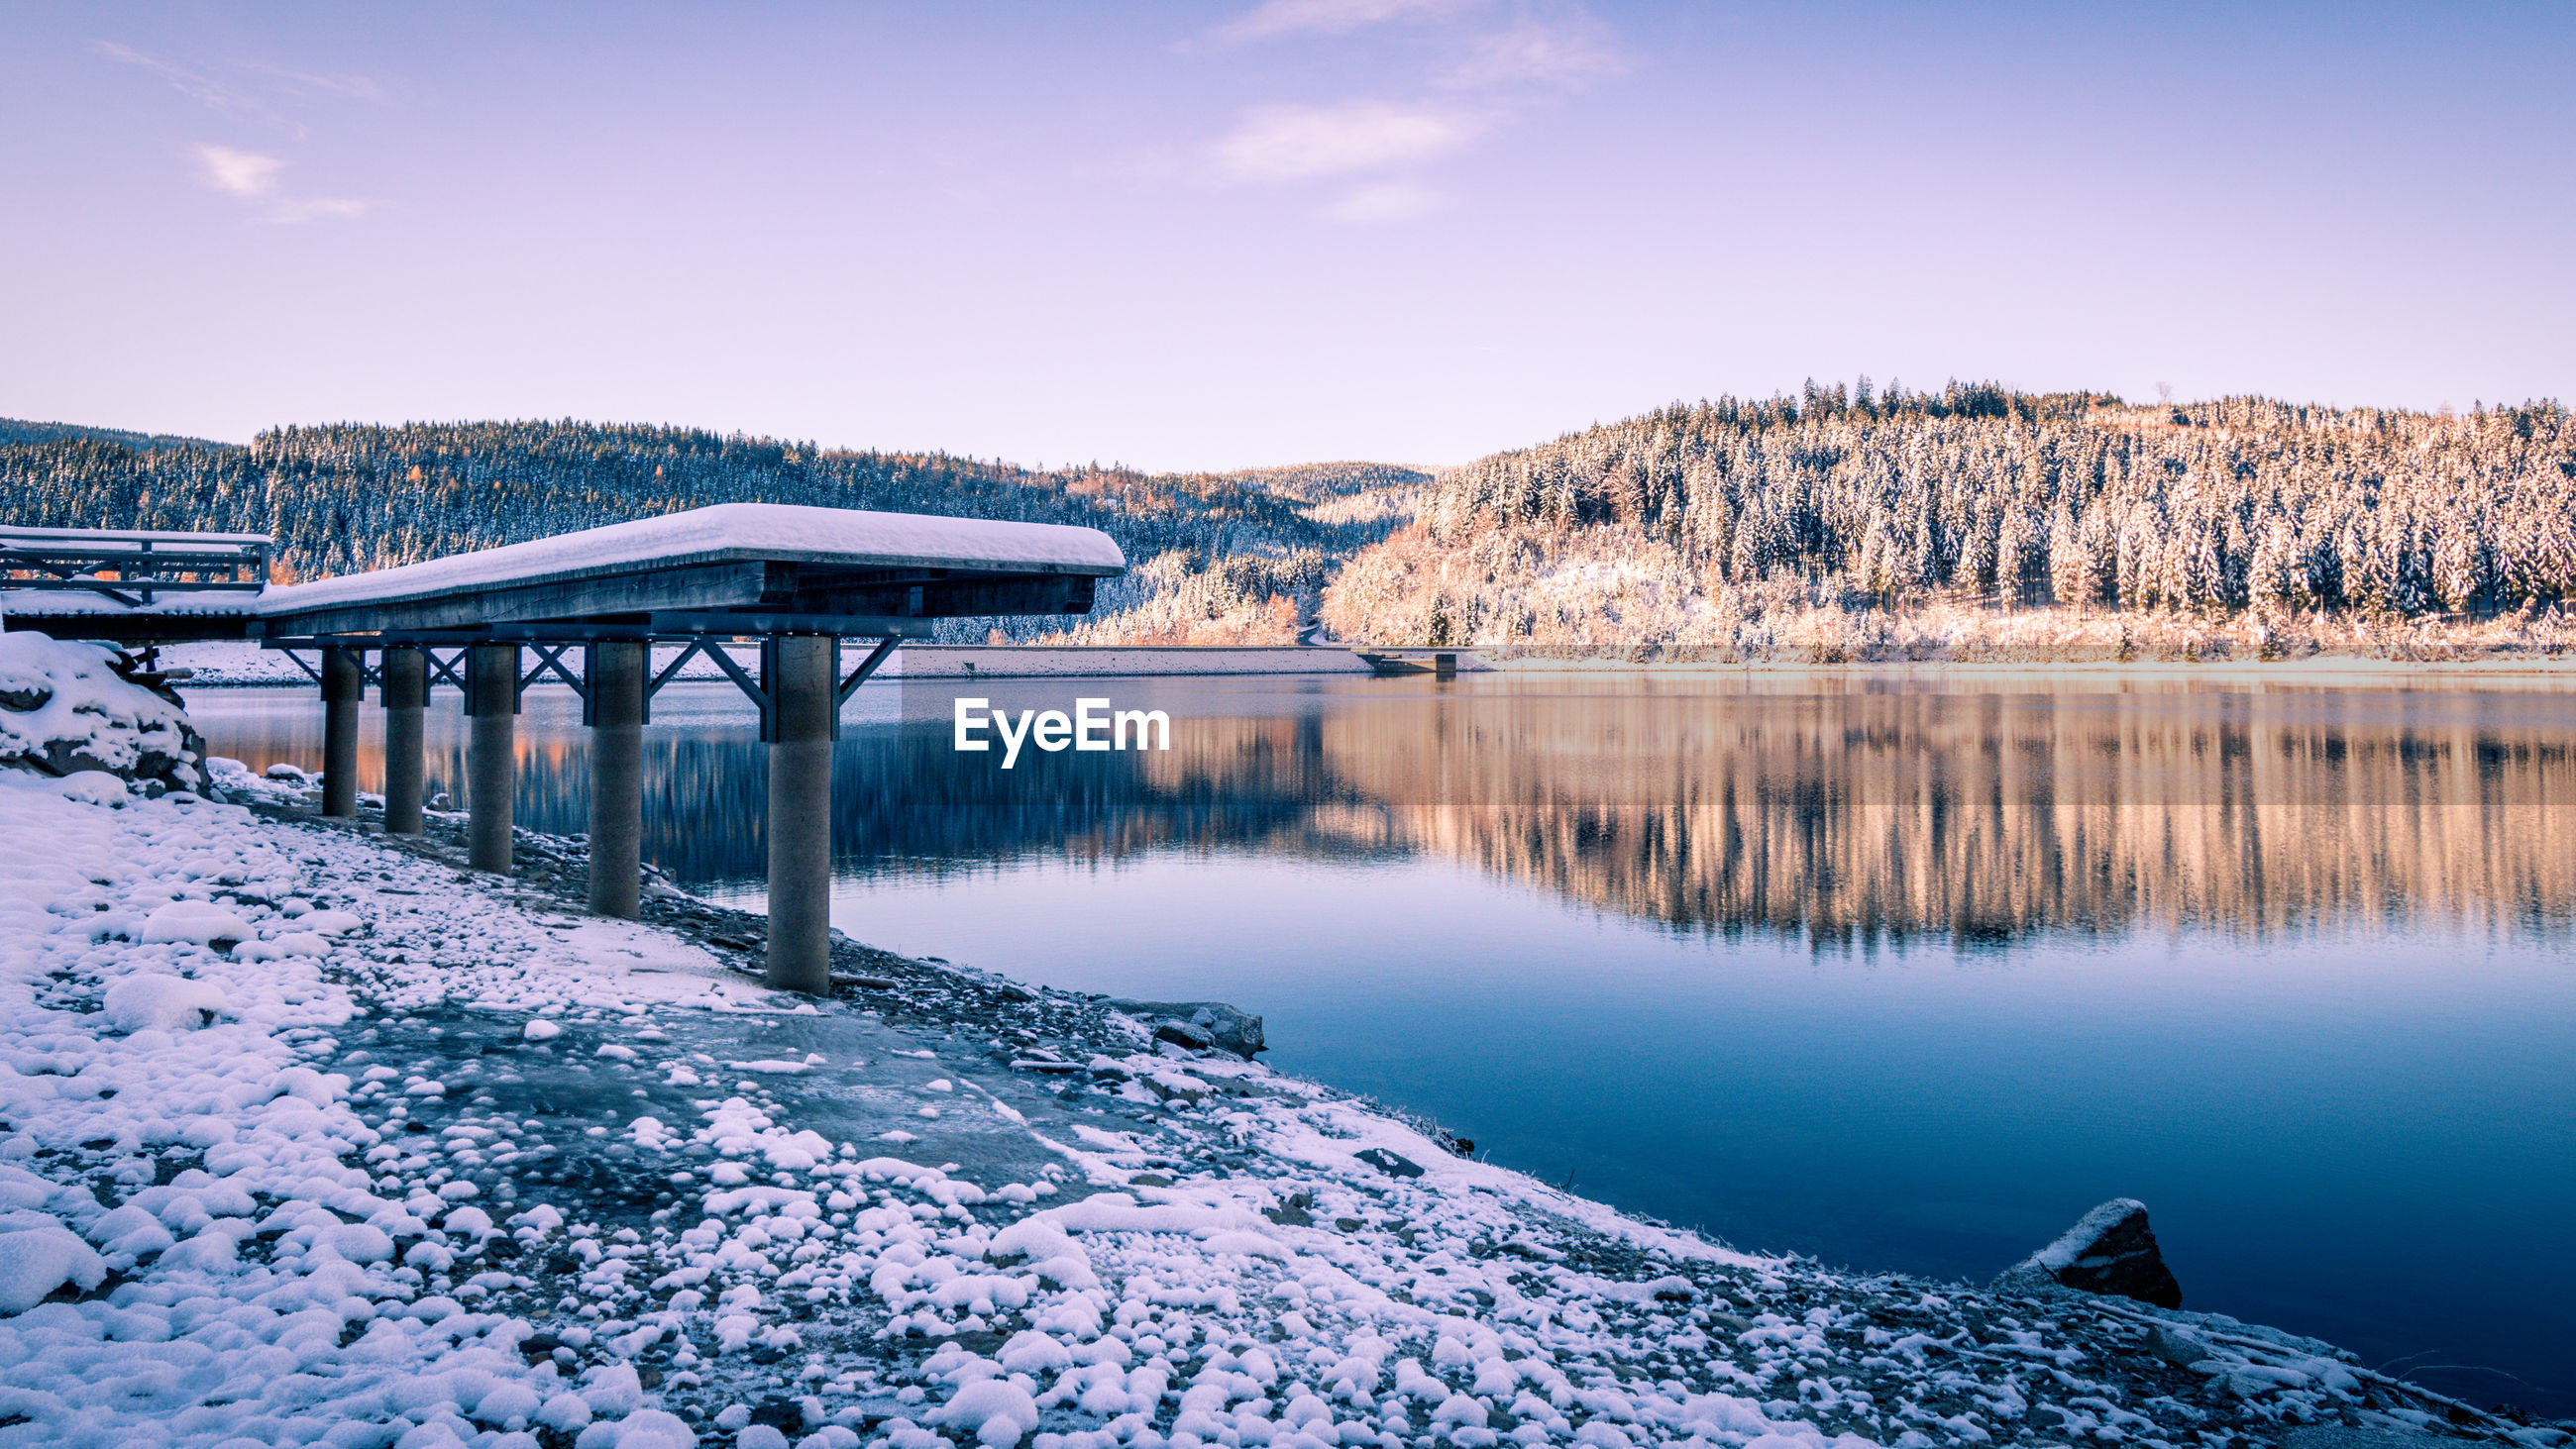 Bridge over river by snowcapped mountains against sky during winter